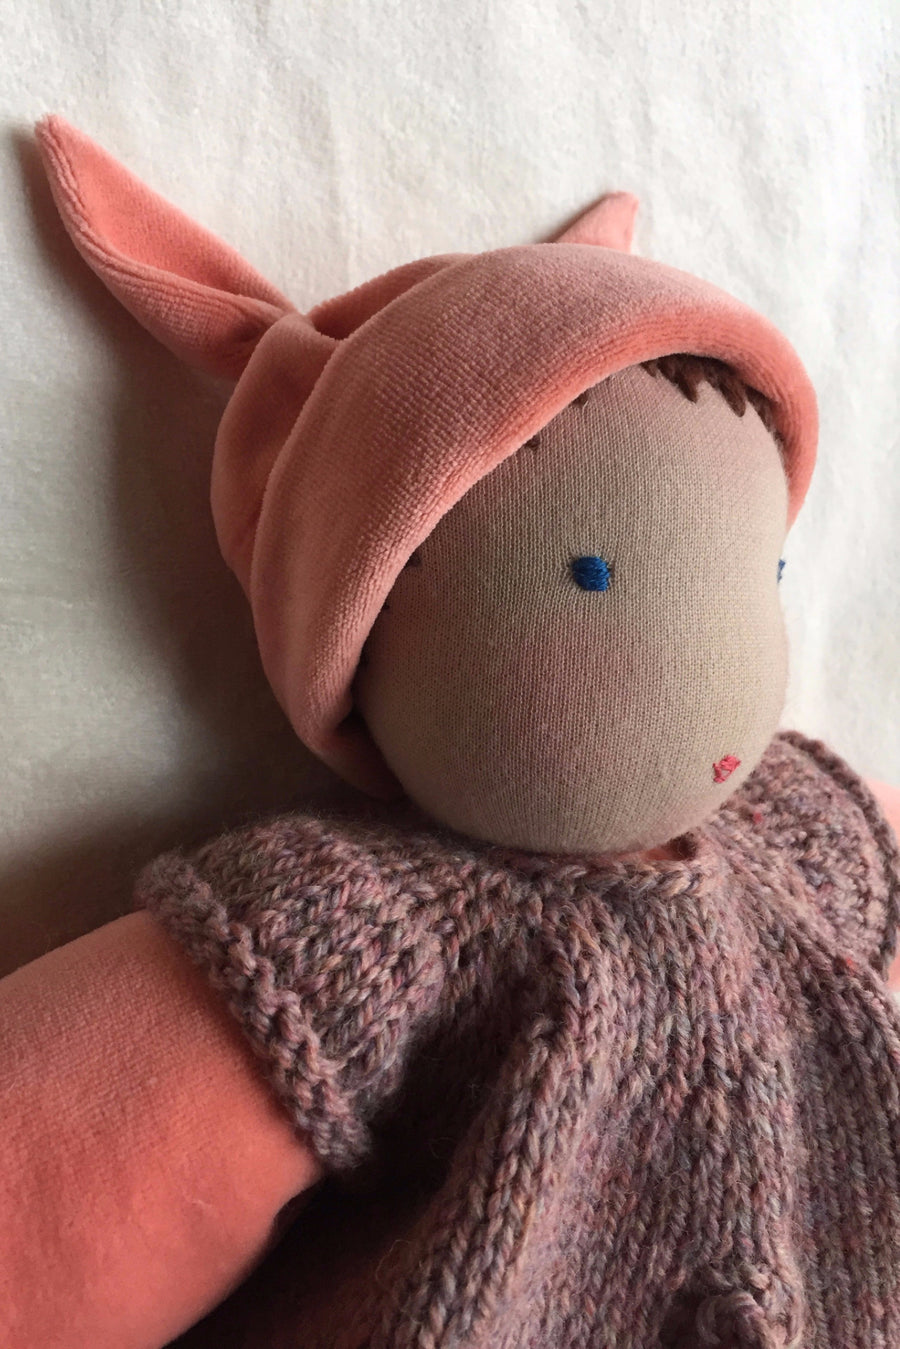 first baby doll, cuddle doll, cotton velour doll, waldorf doll, snuggle doll, toddler doll, nursery gift, baby shower gift